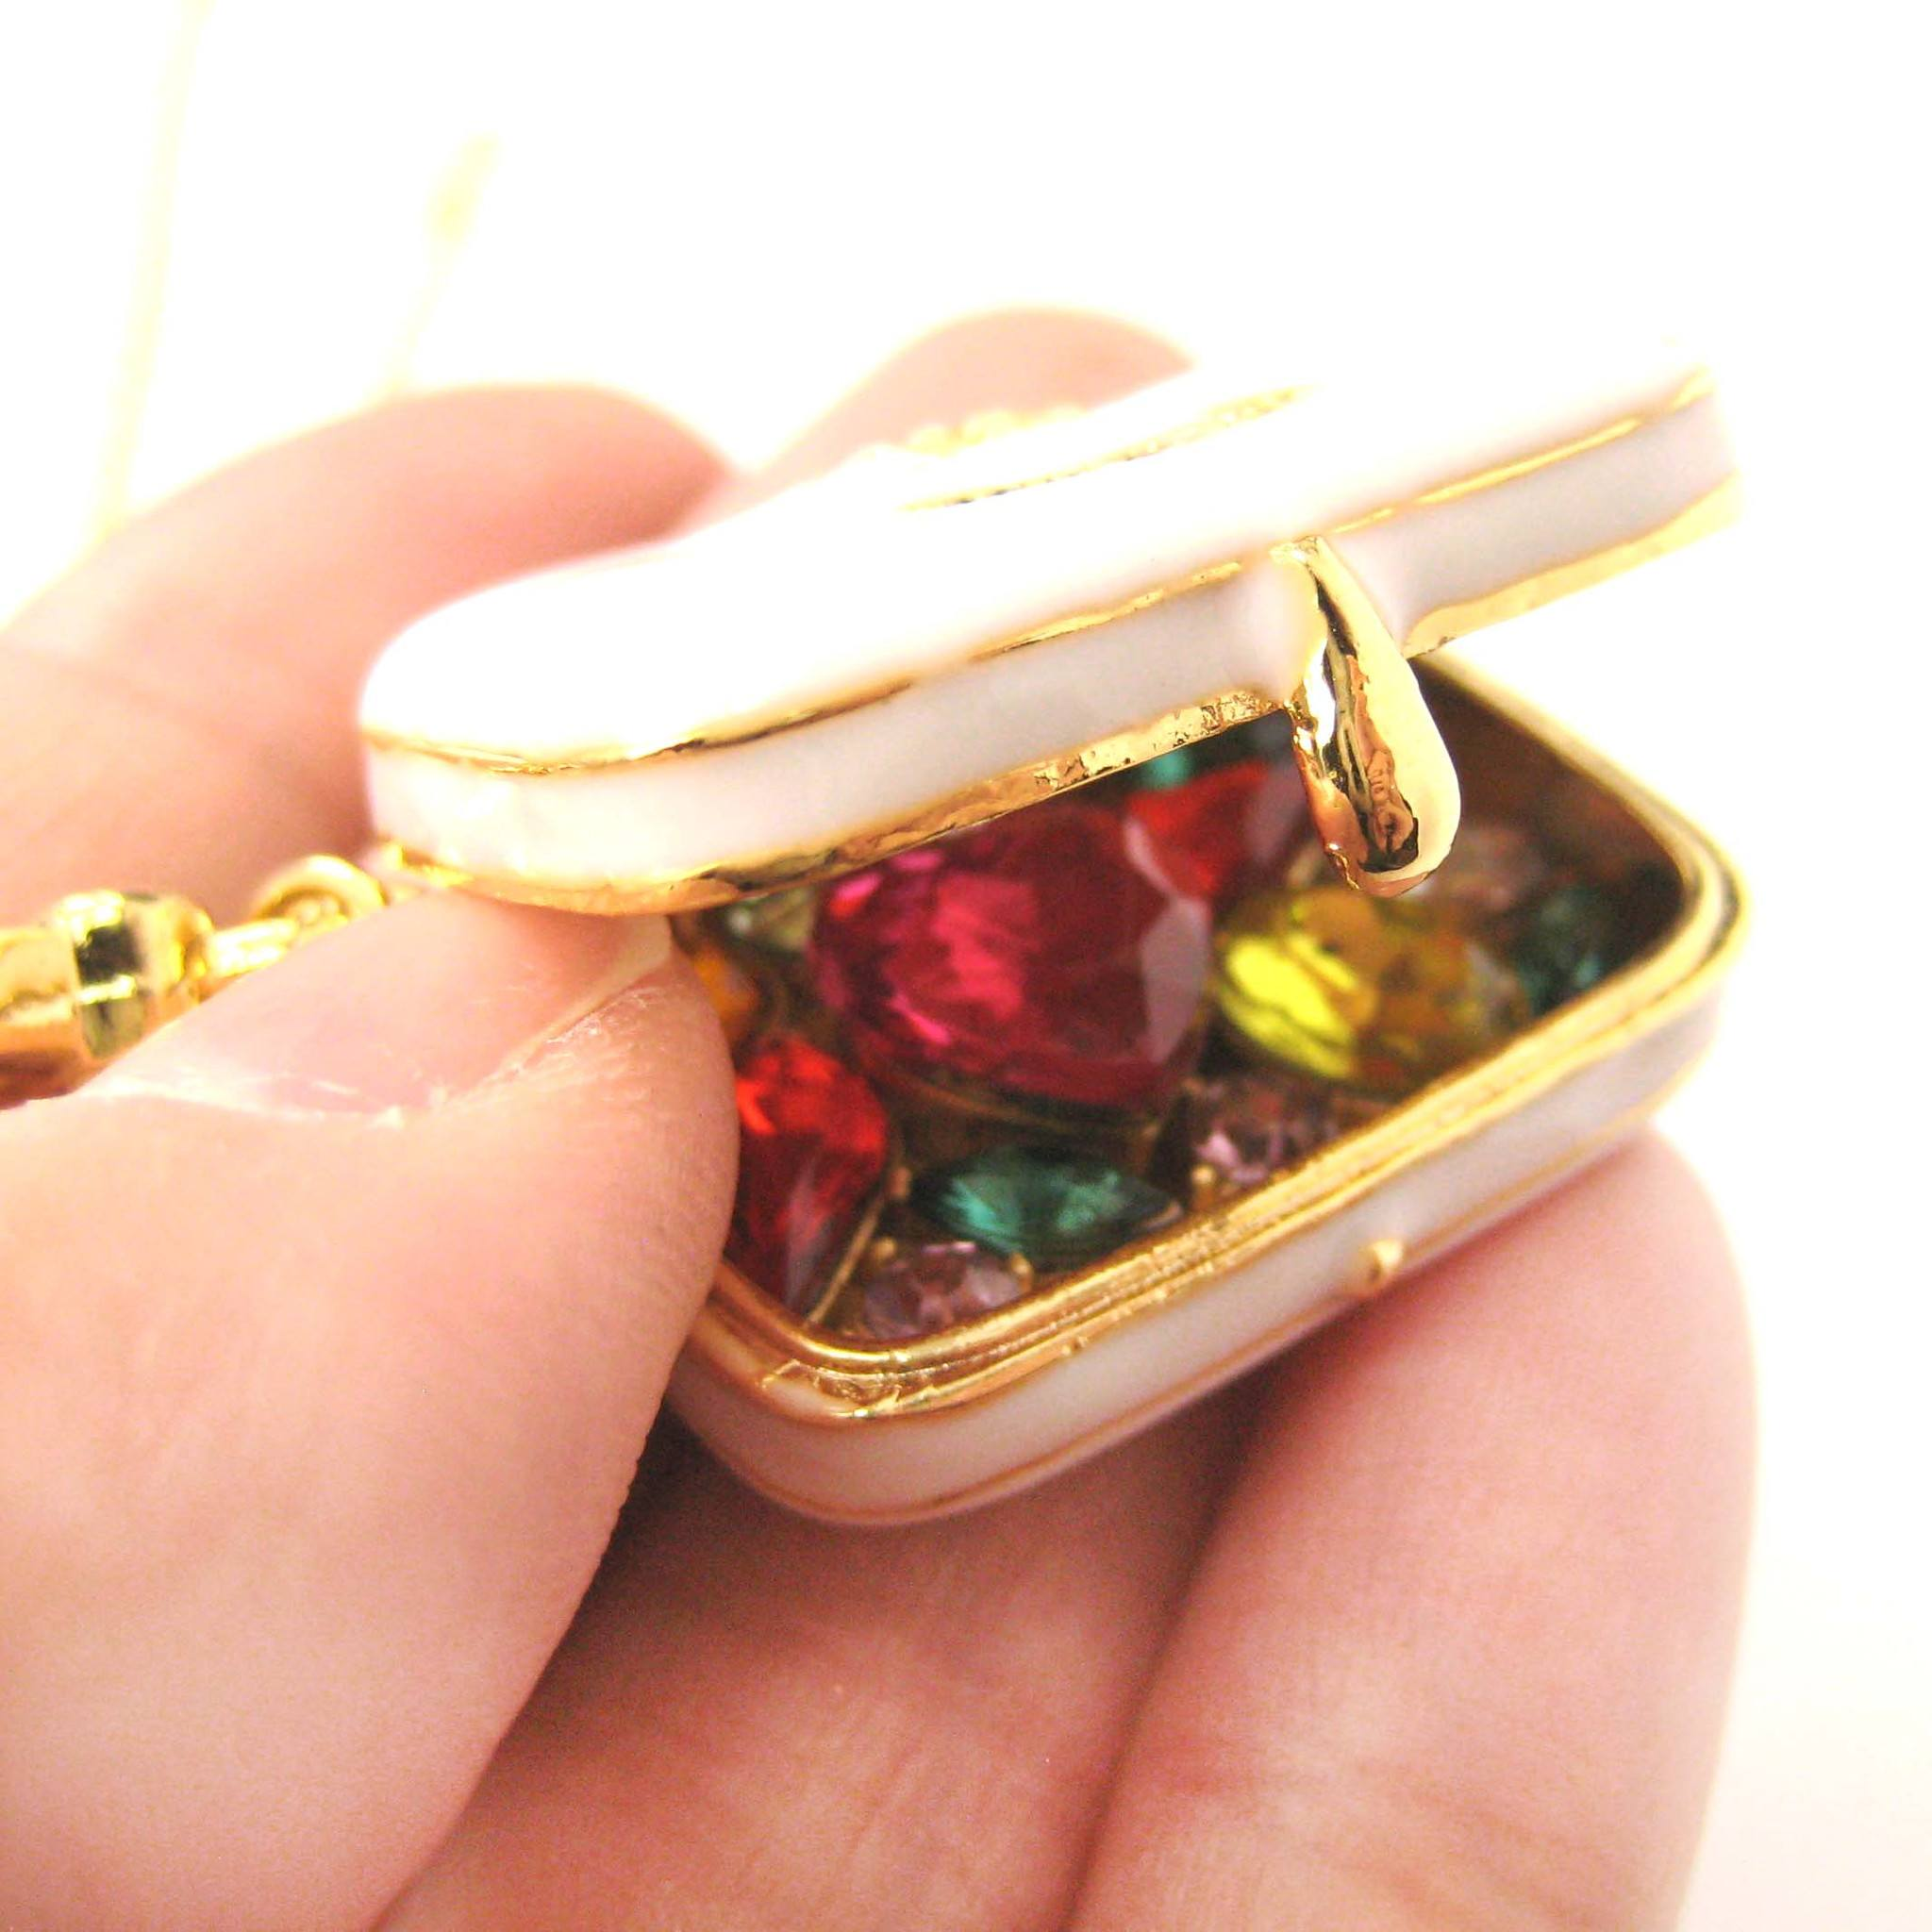 Travel Bag Suitcase Locket Full of Gems Pendant Necklace: It Opens Up!